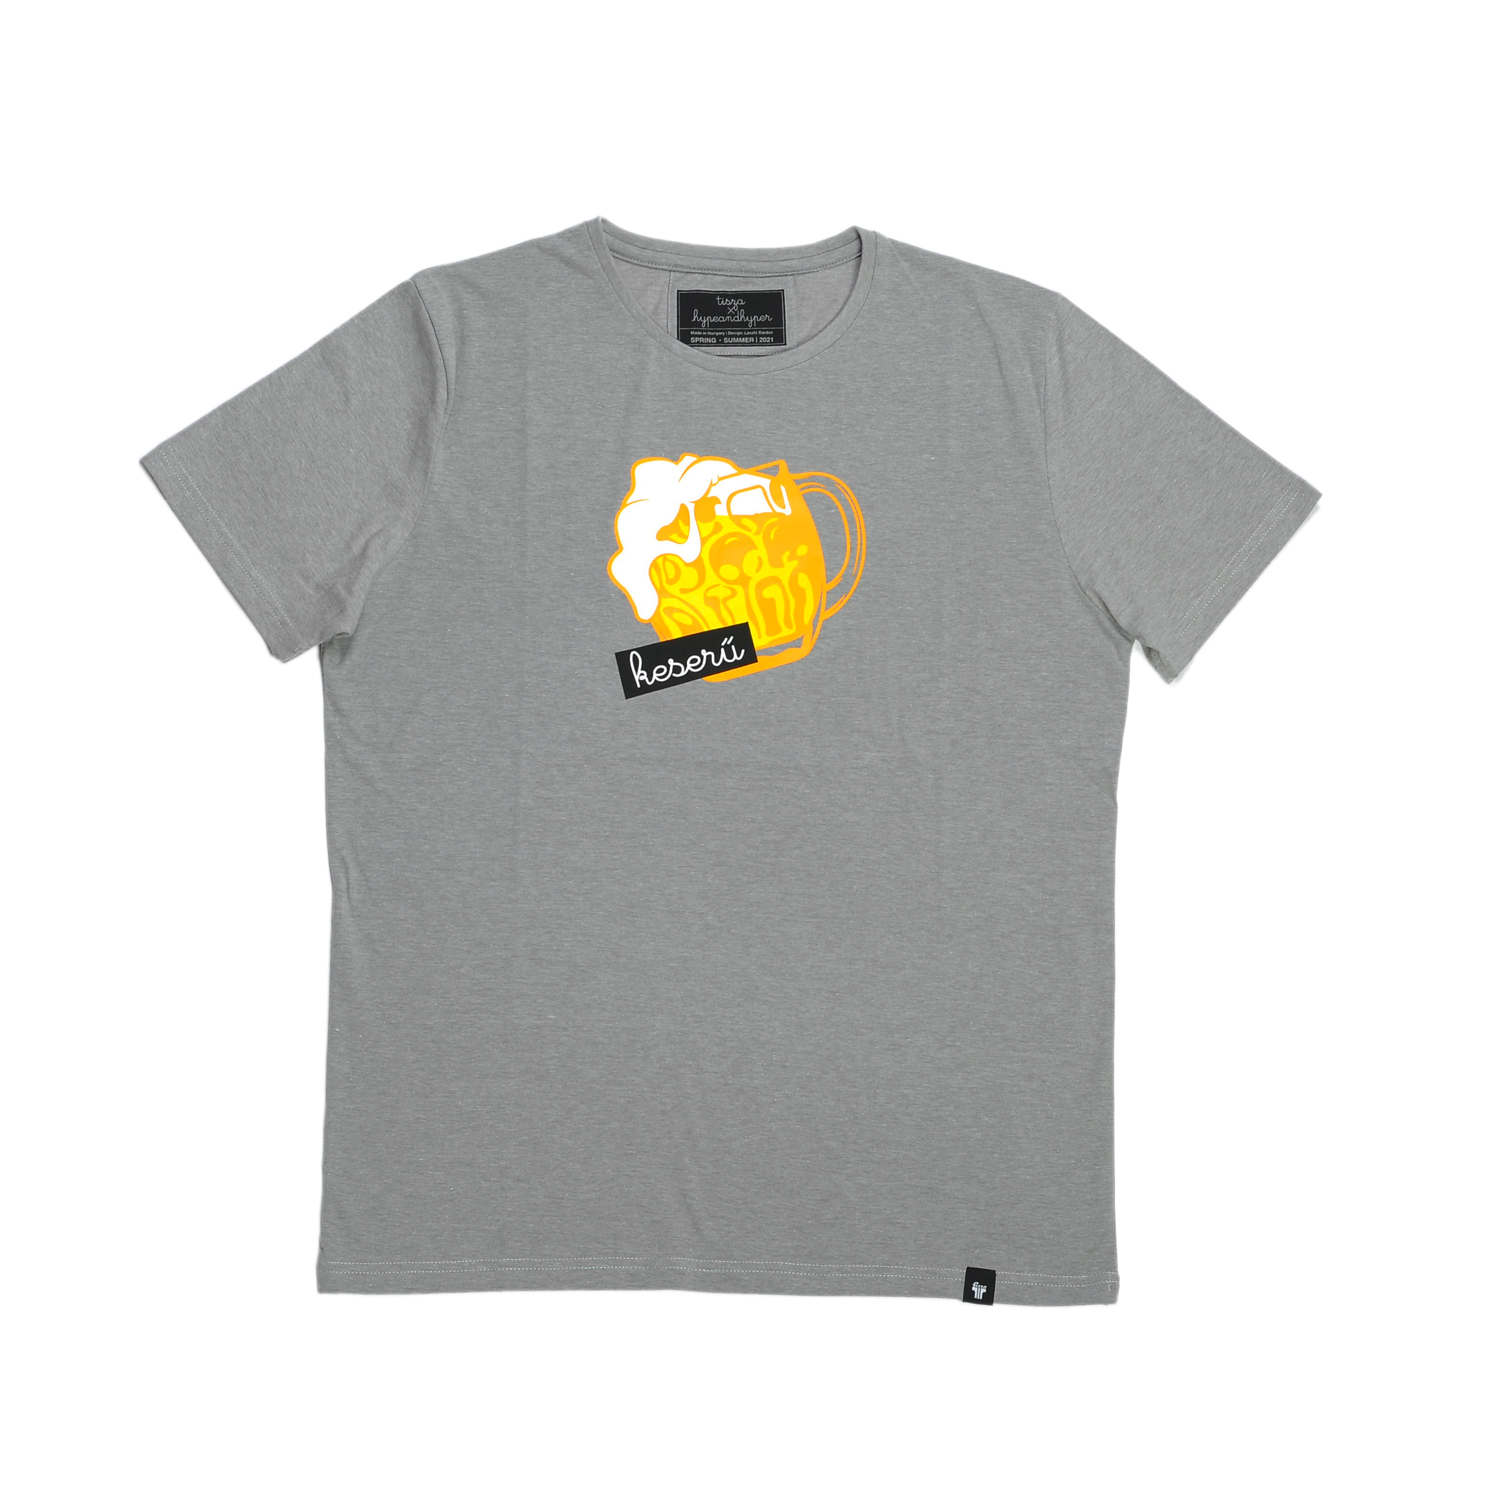 Tisza shoes - T-shirt - Beer